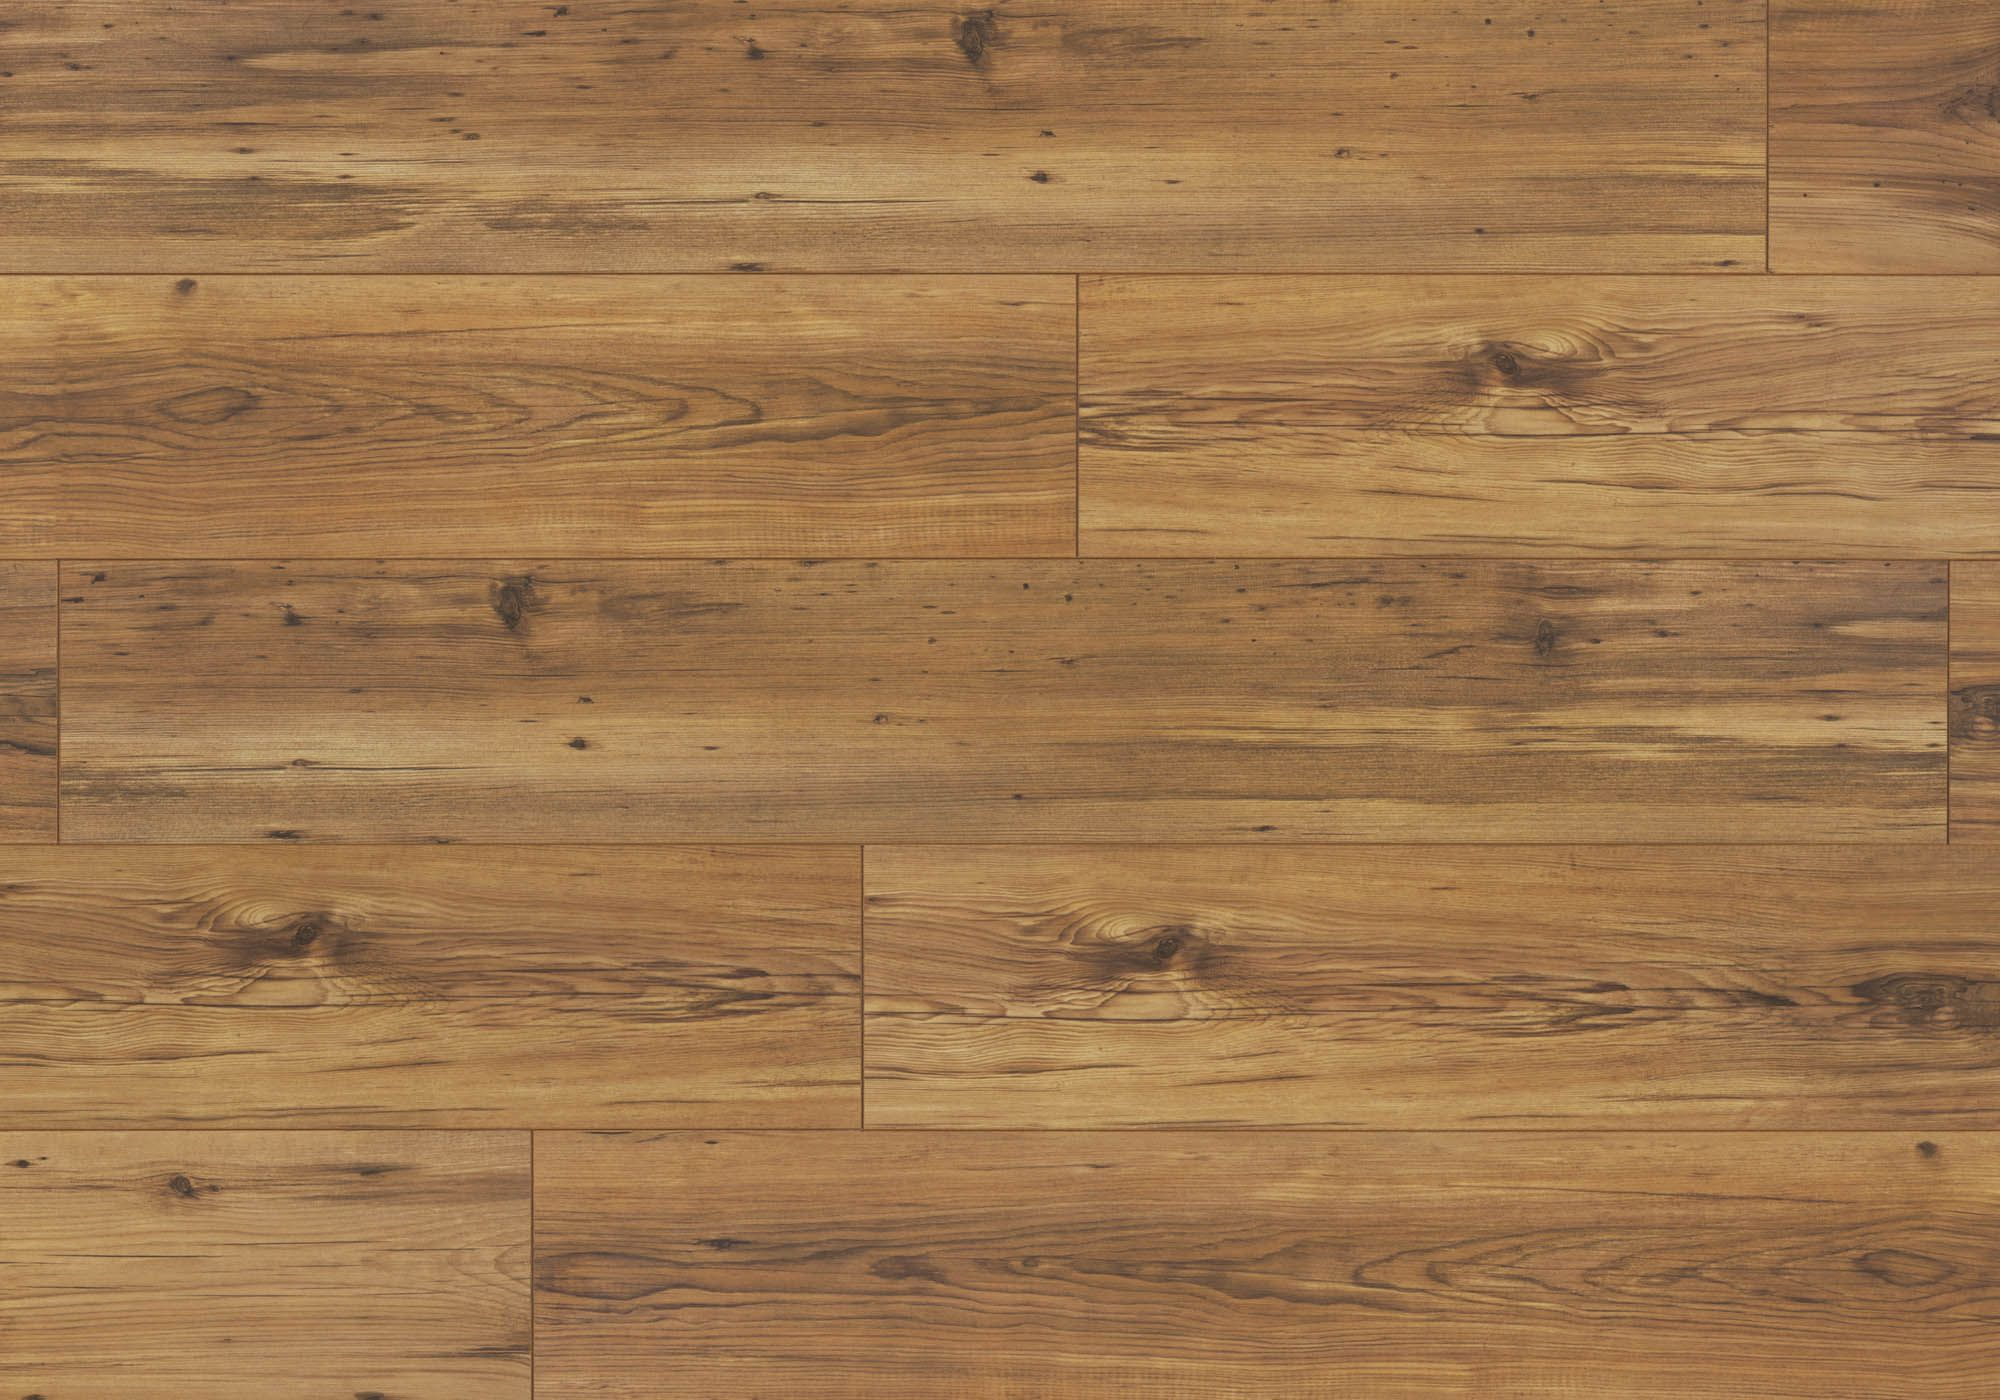 Saratoga Pine Solido Visionscollection 32818 Saratoga Pine Offers A Rich Warm Pine Look With A Realistic Wood Grain Wood Grain Texture Wood Laminate Warm Wood